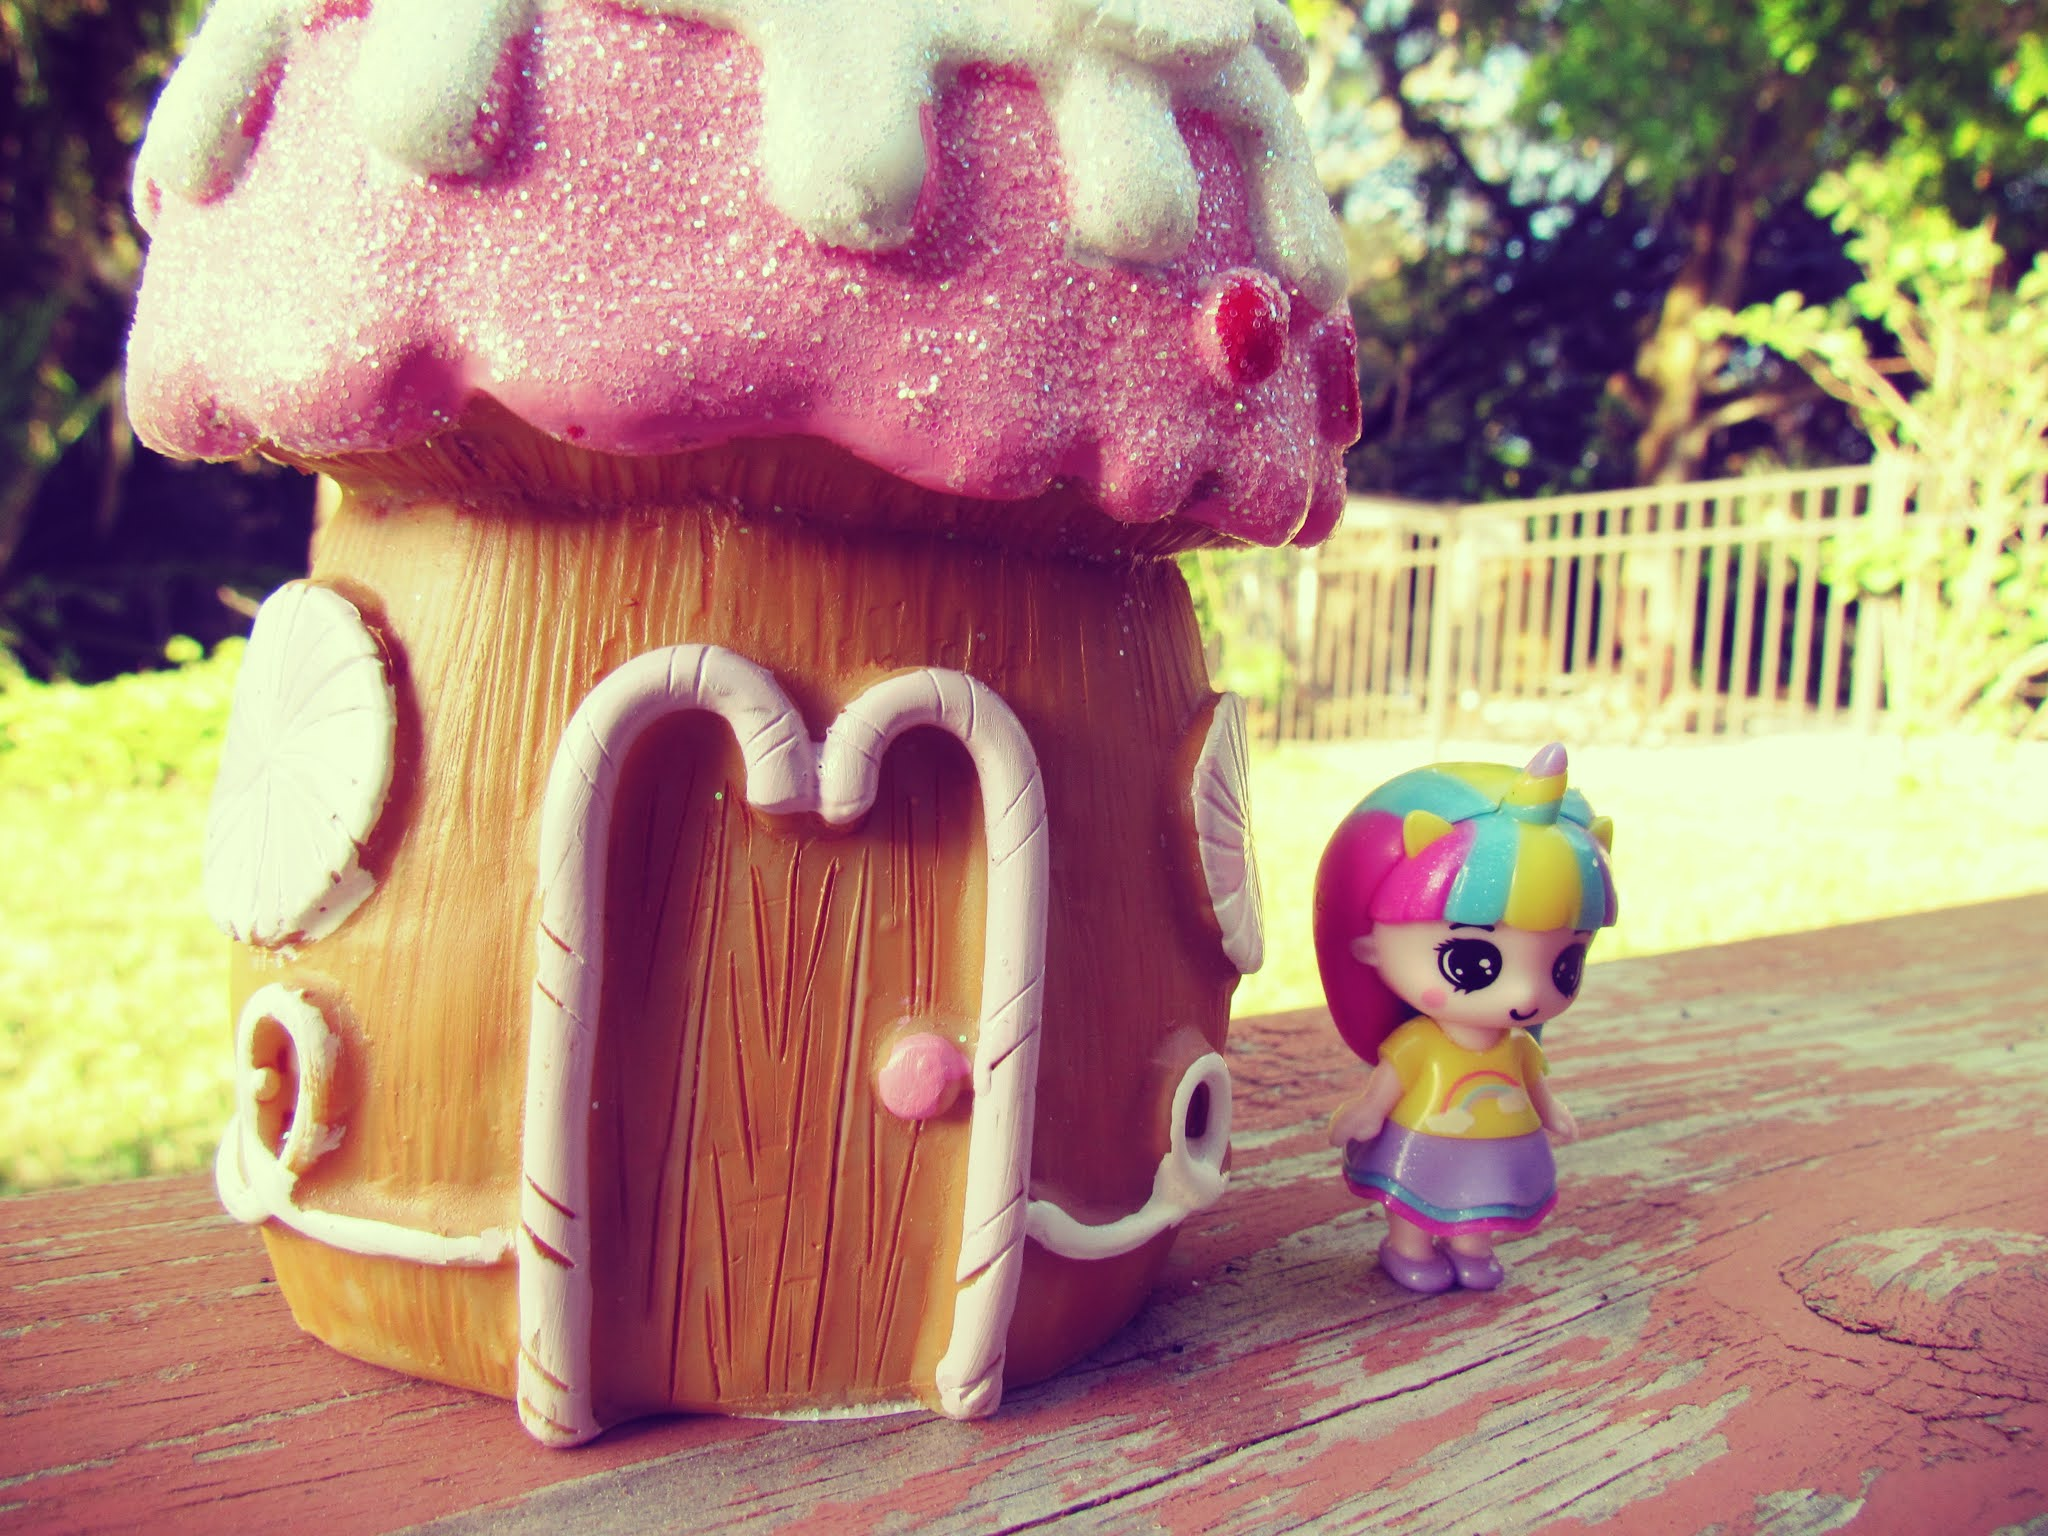 Mystical fairy village with rainbow-haired unicorn doll with magical unicorn horn to unlock magic powers and mysticism